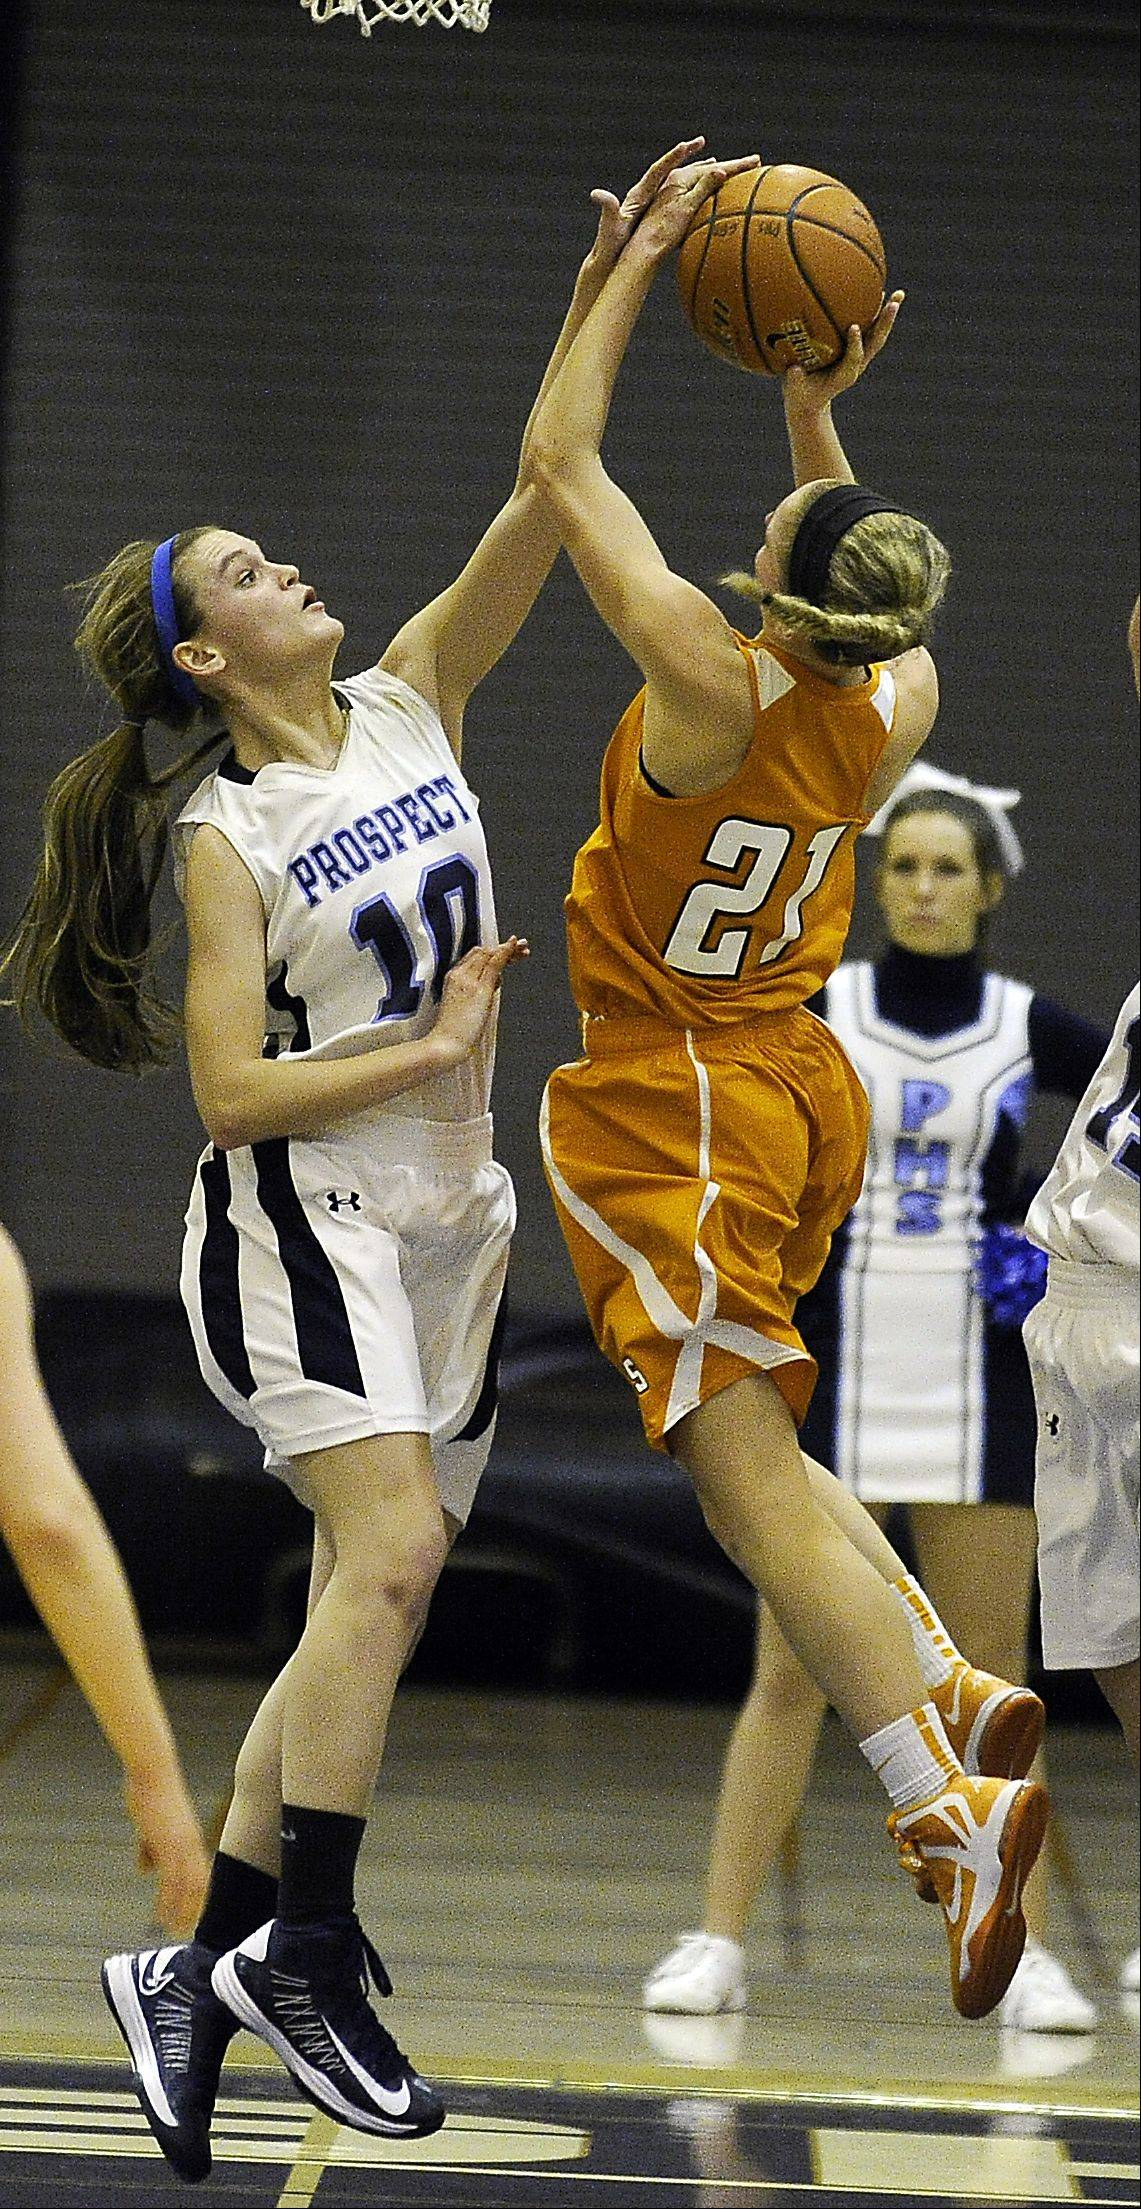 Prospect's Taylor Will blocks Hersey's Meg Cerniglia in the first half.